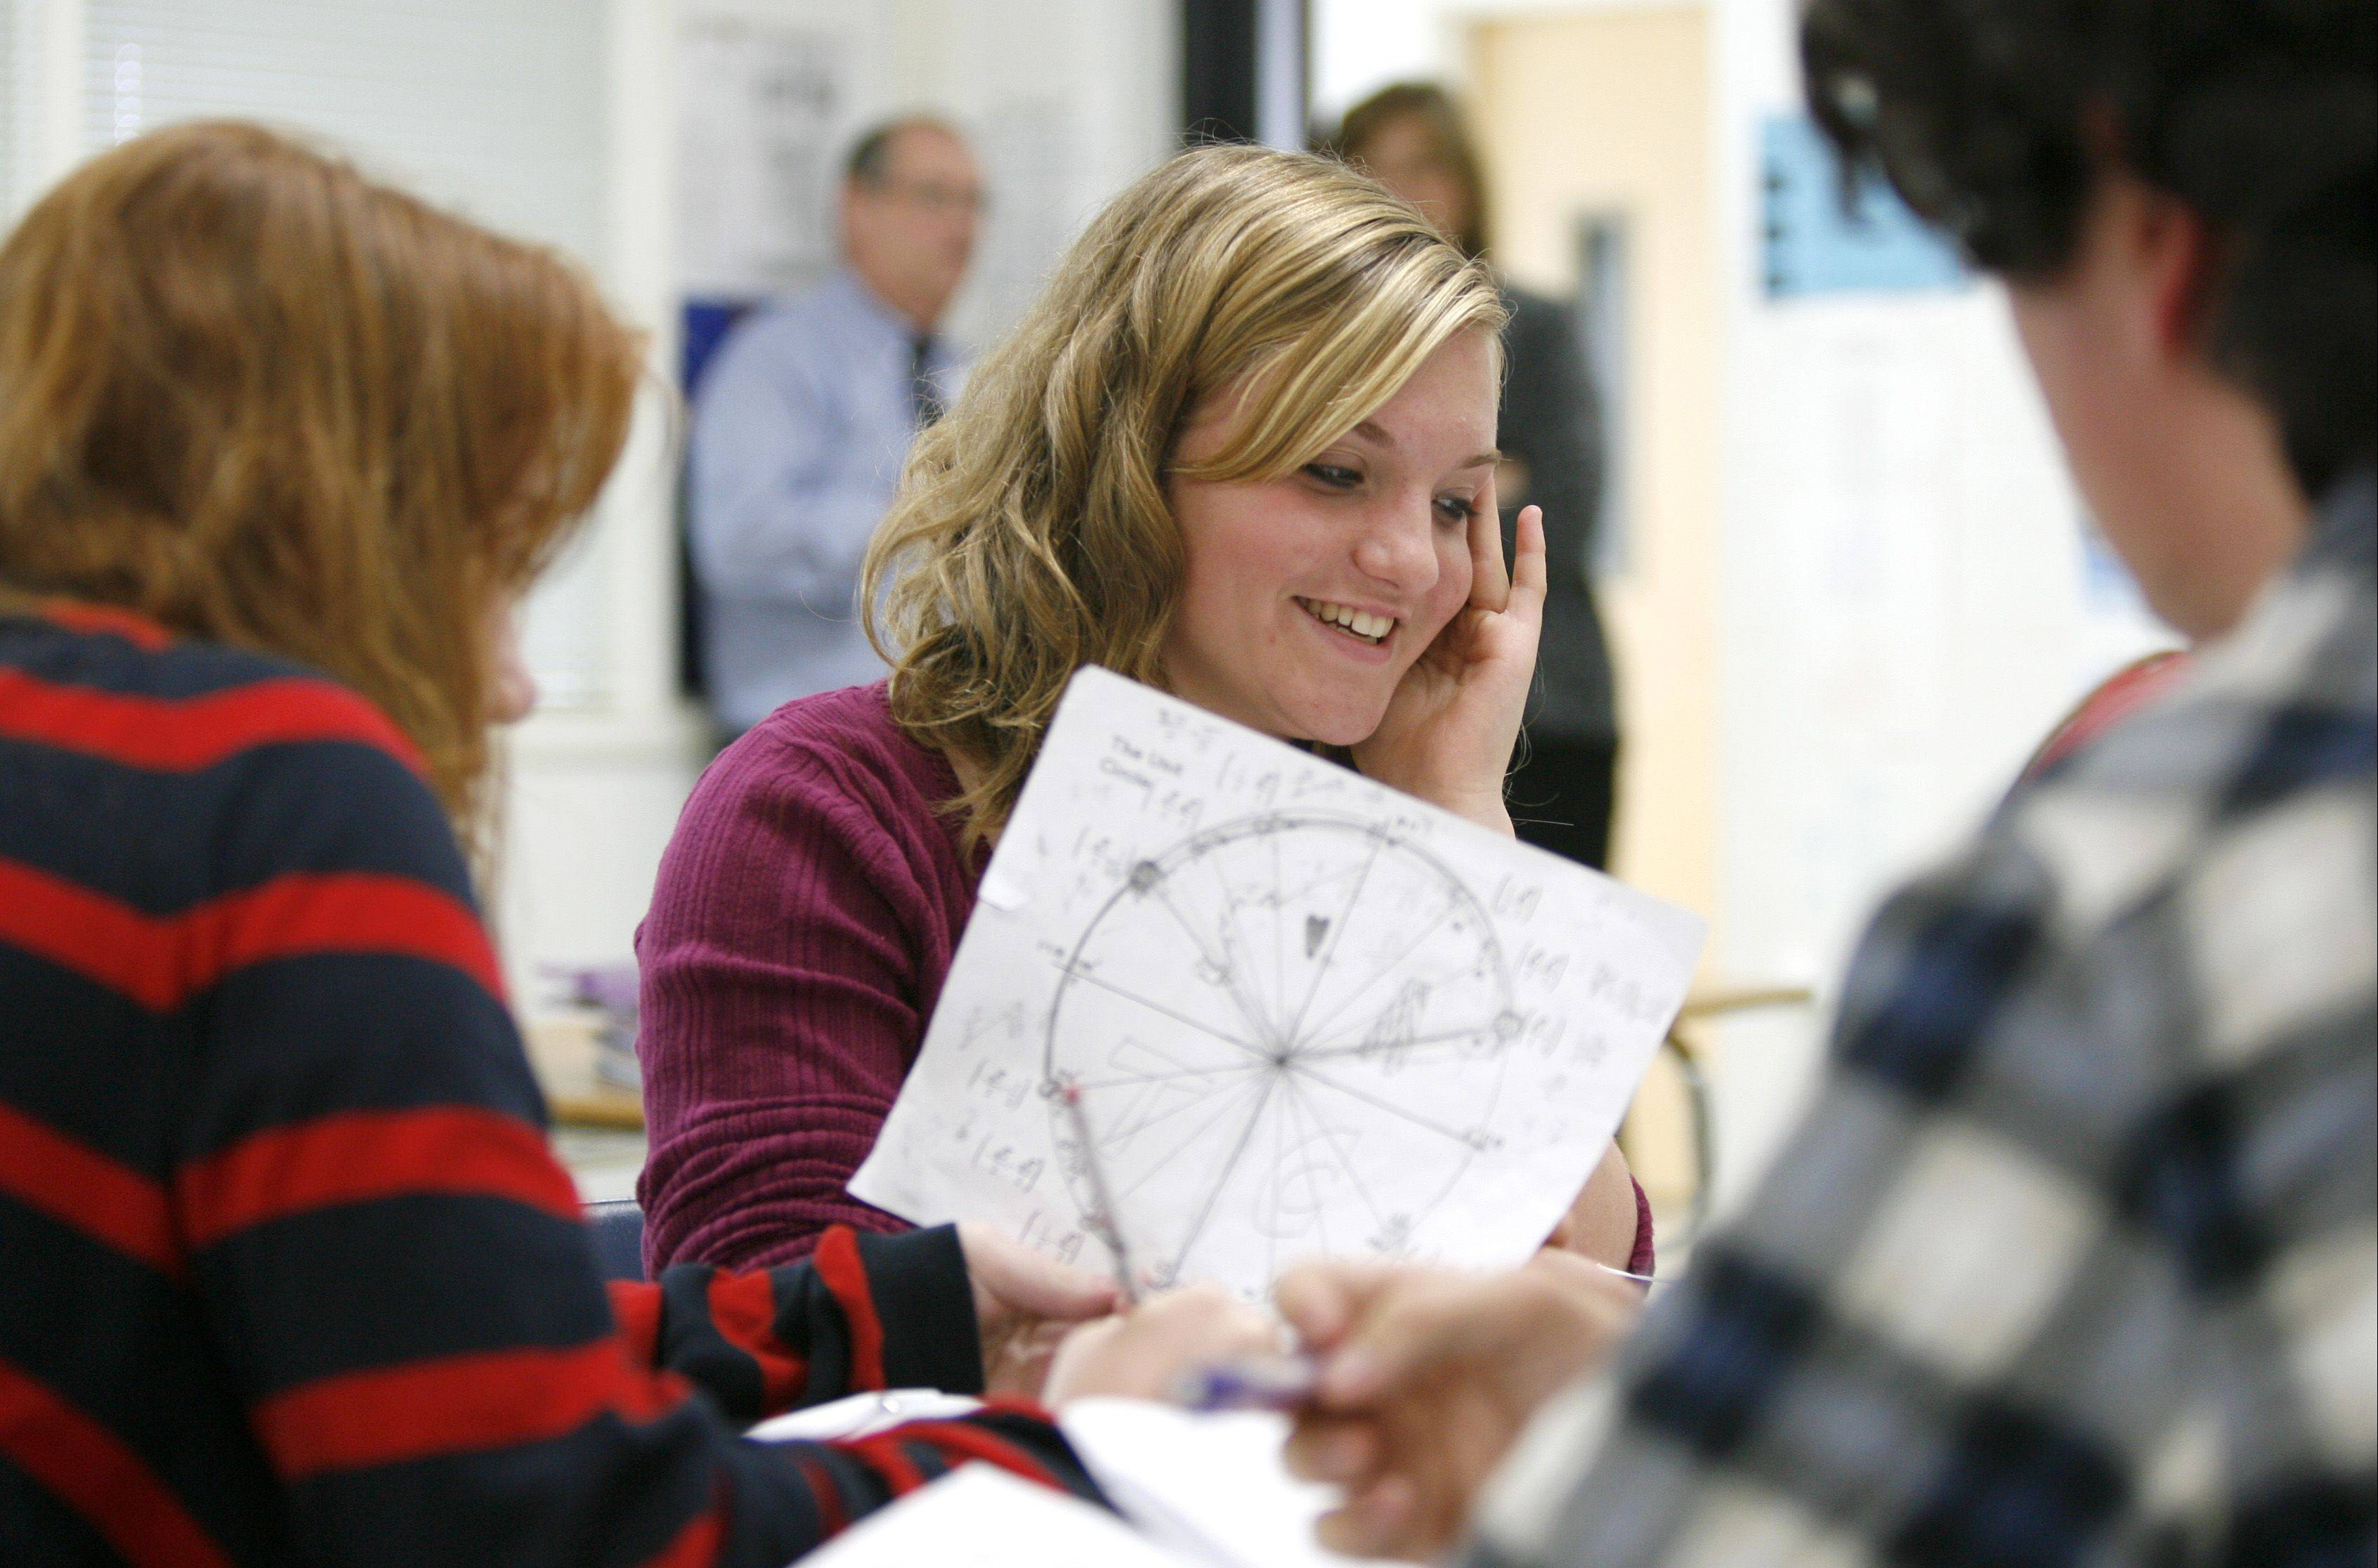 Christine Young, center, solves a problem during Mike Coit's honors pre-calculus class at Lisle Senior High School, where average composite ACT scores jumped from 22.0 in 2010 to 23.1 this year.